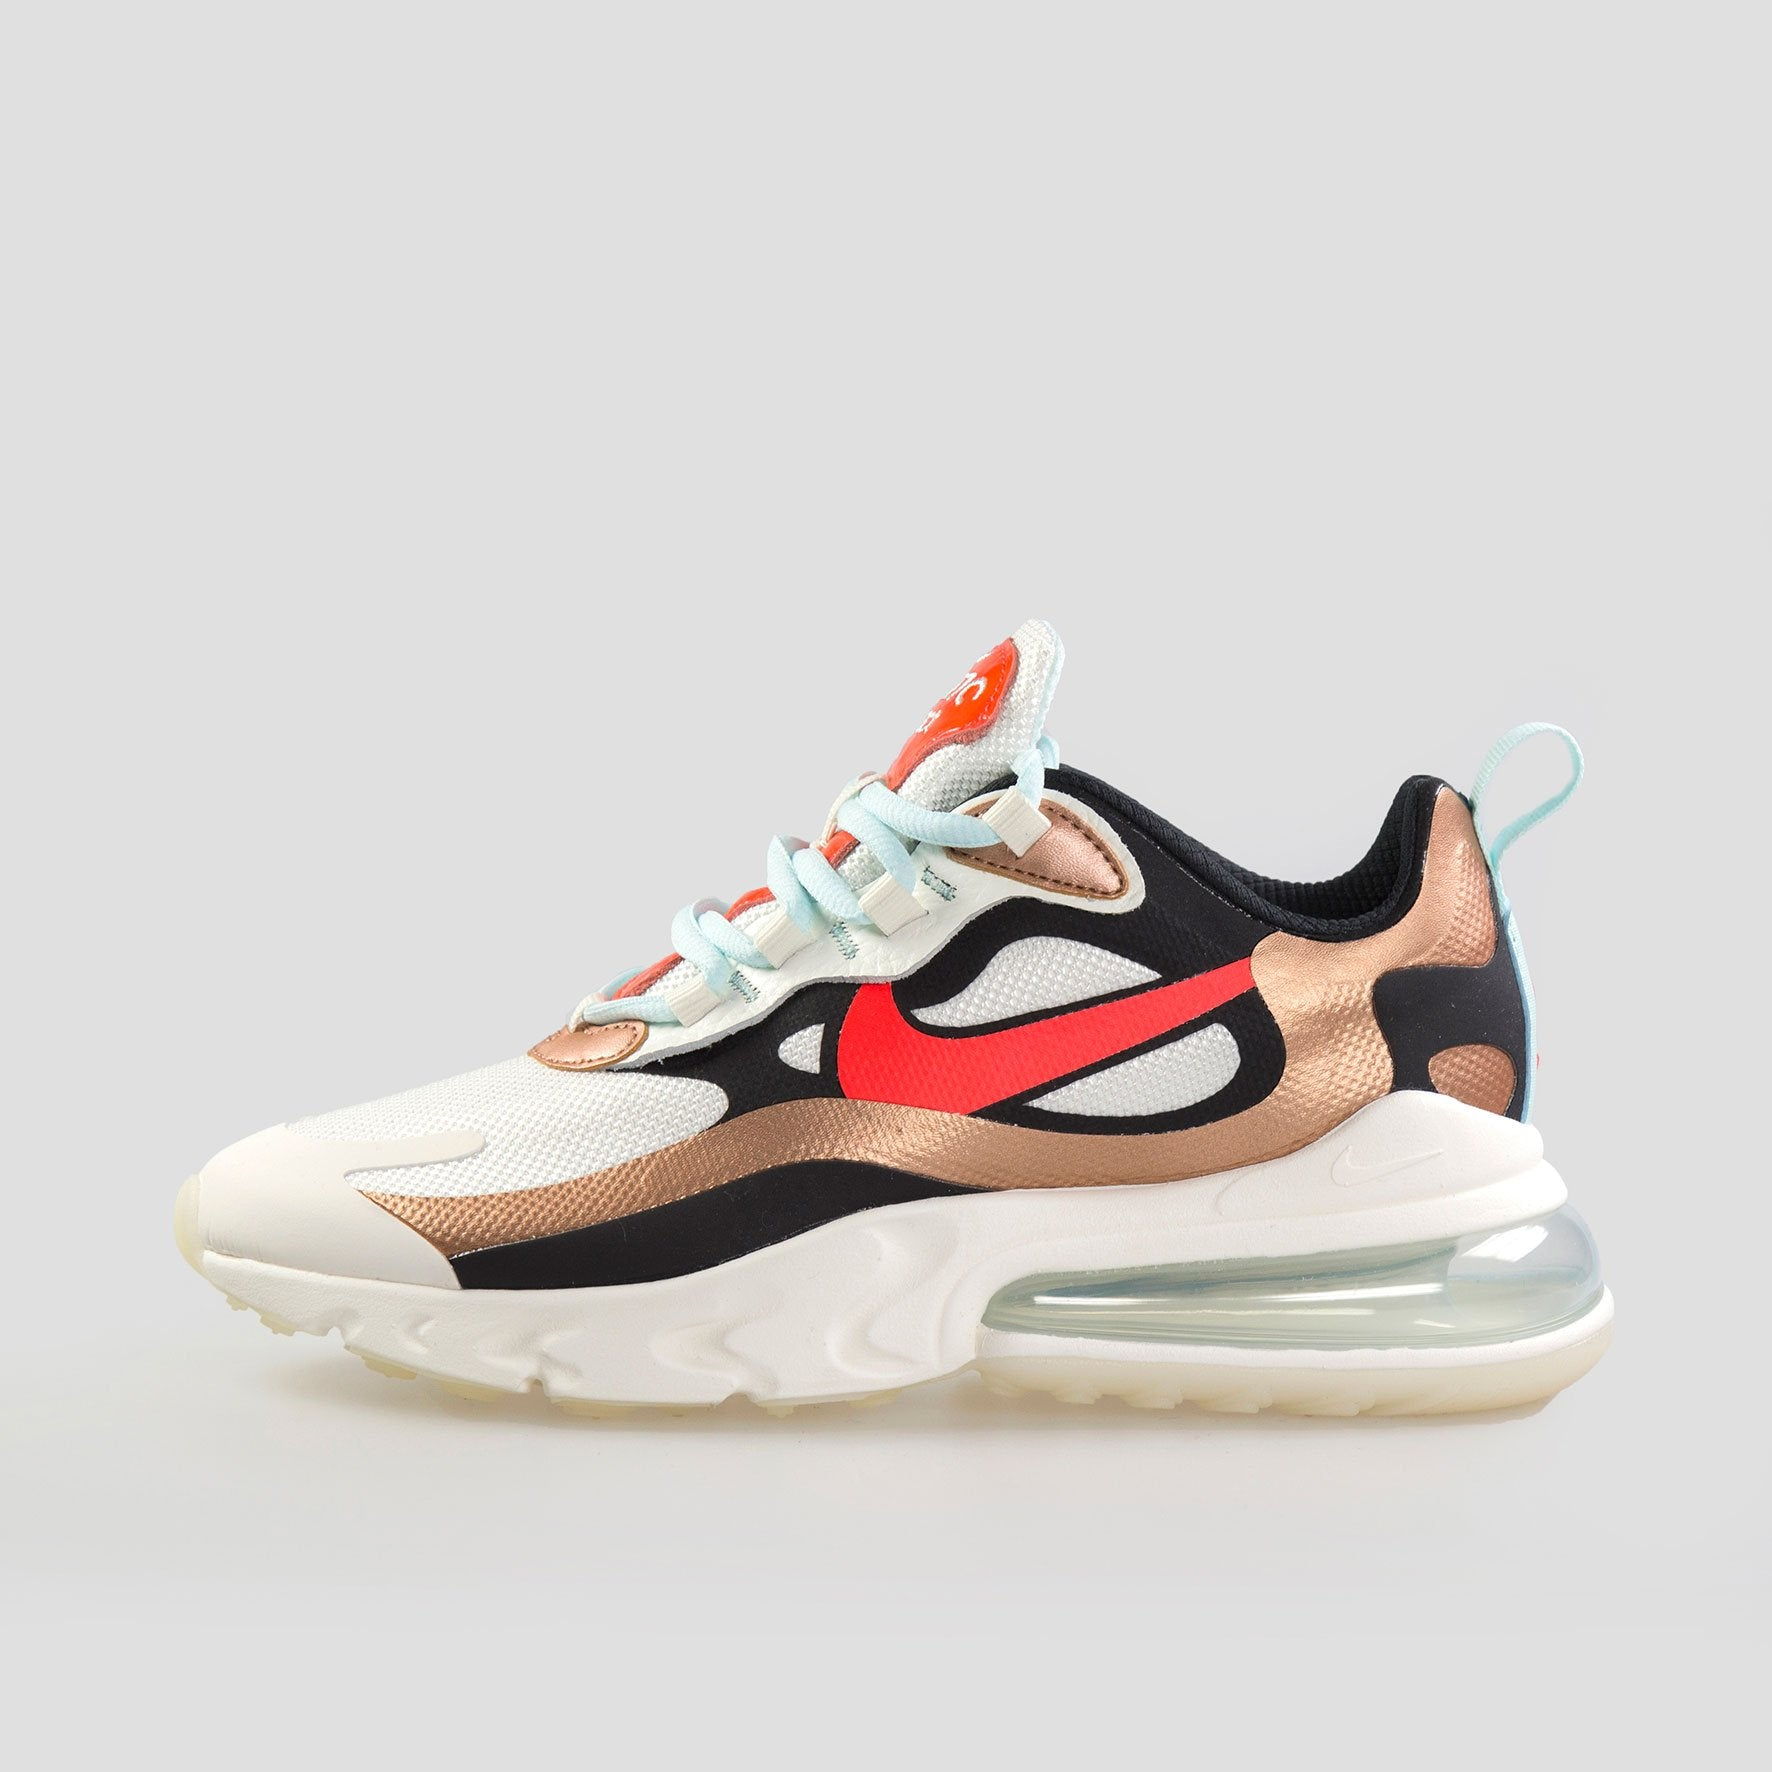 air max 270 chica